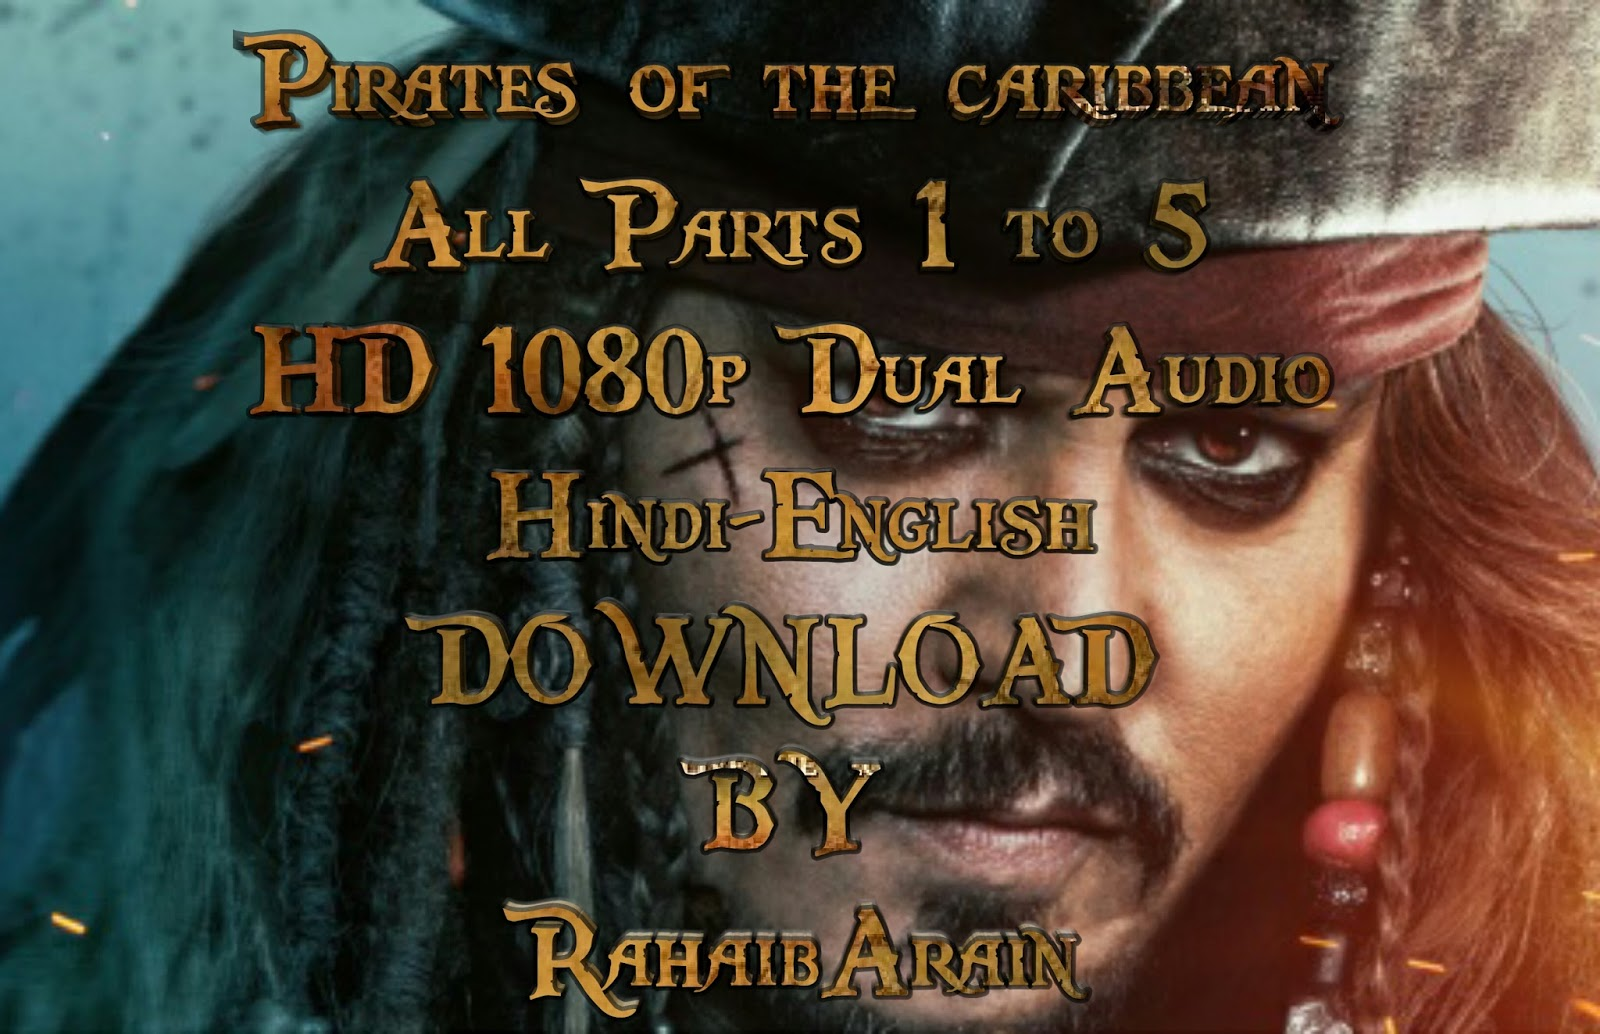 pirates of the caribbean 5 1080p download in hindi